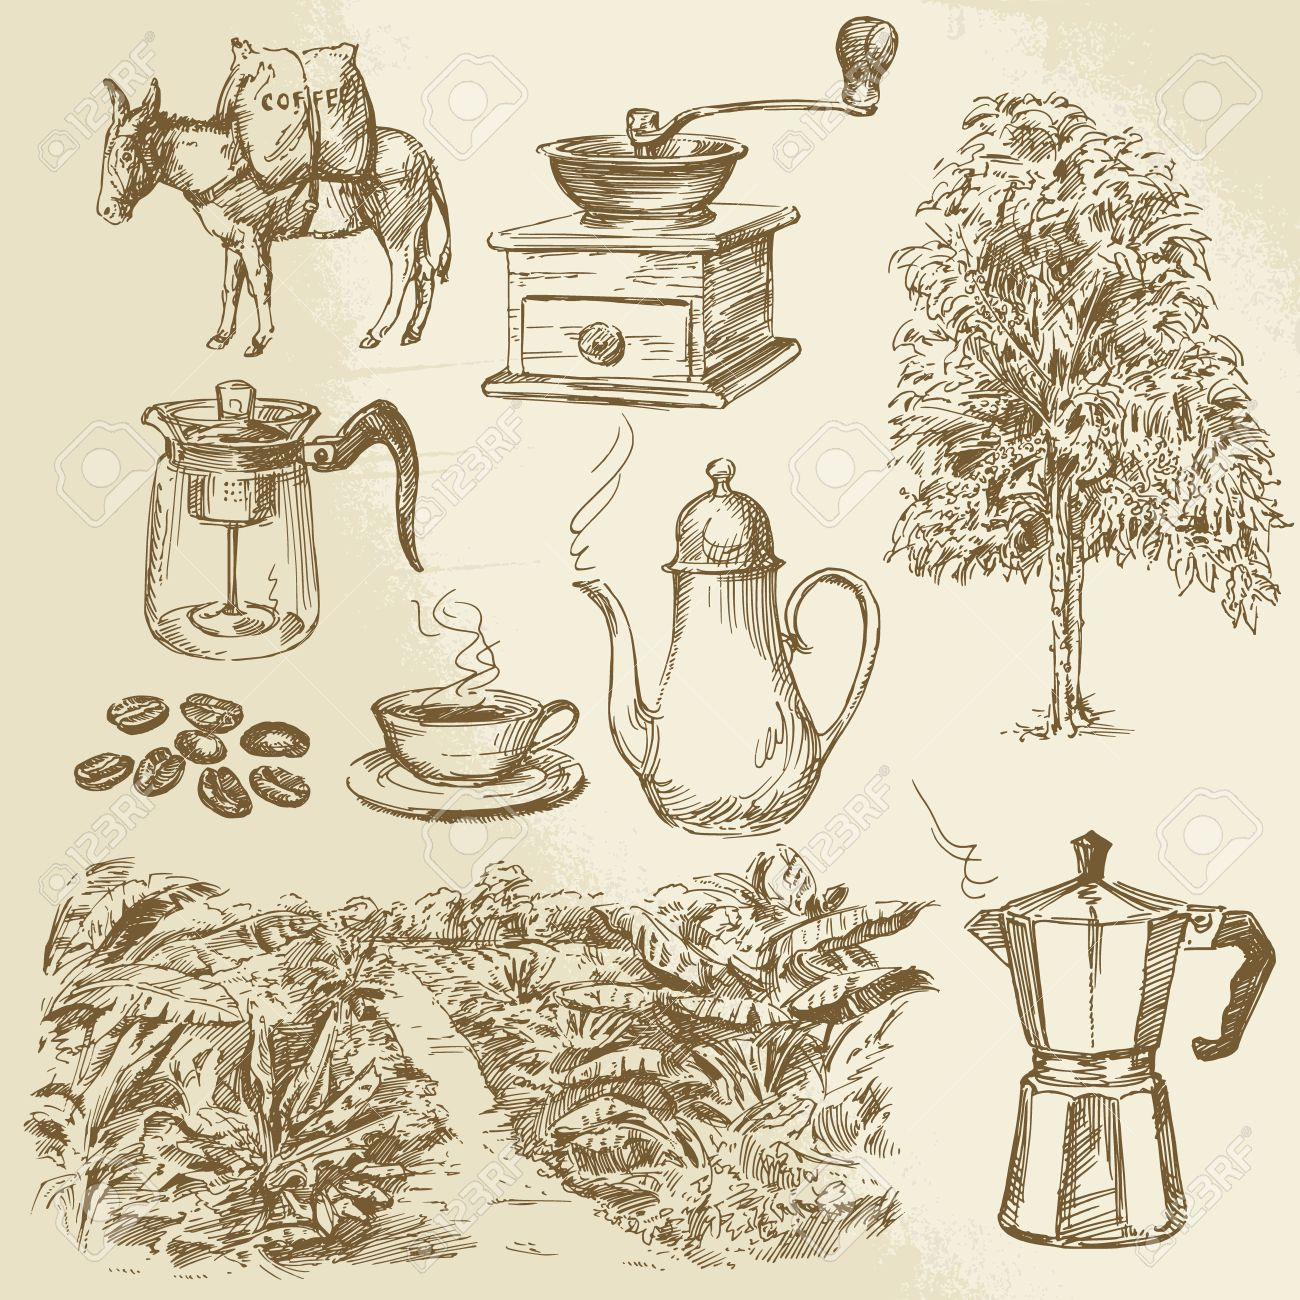 coffee collection - hand drawn vector illustration Standard-Bild - 27447032